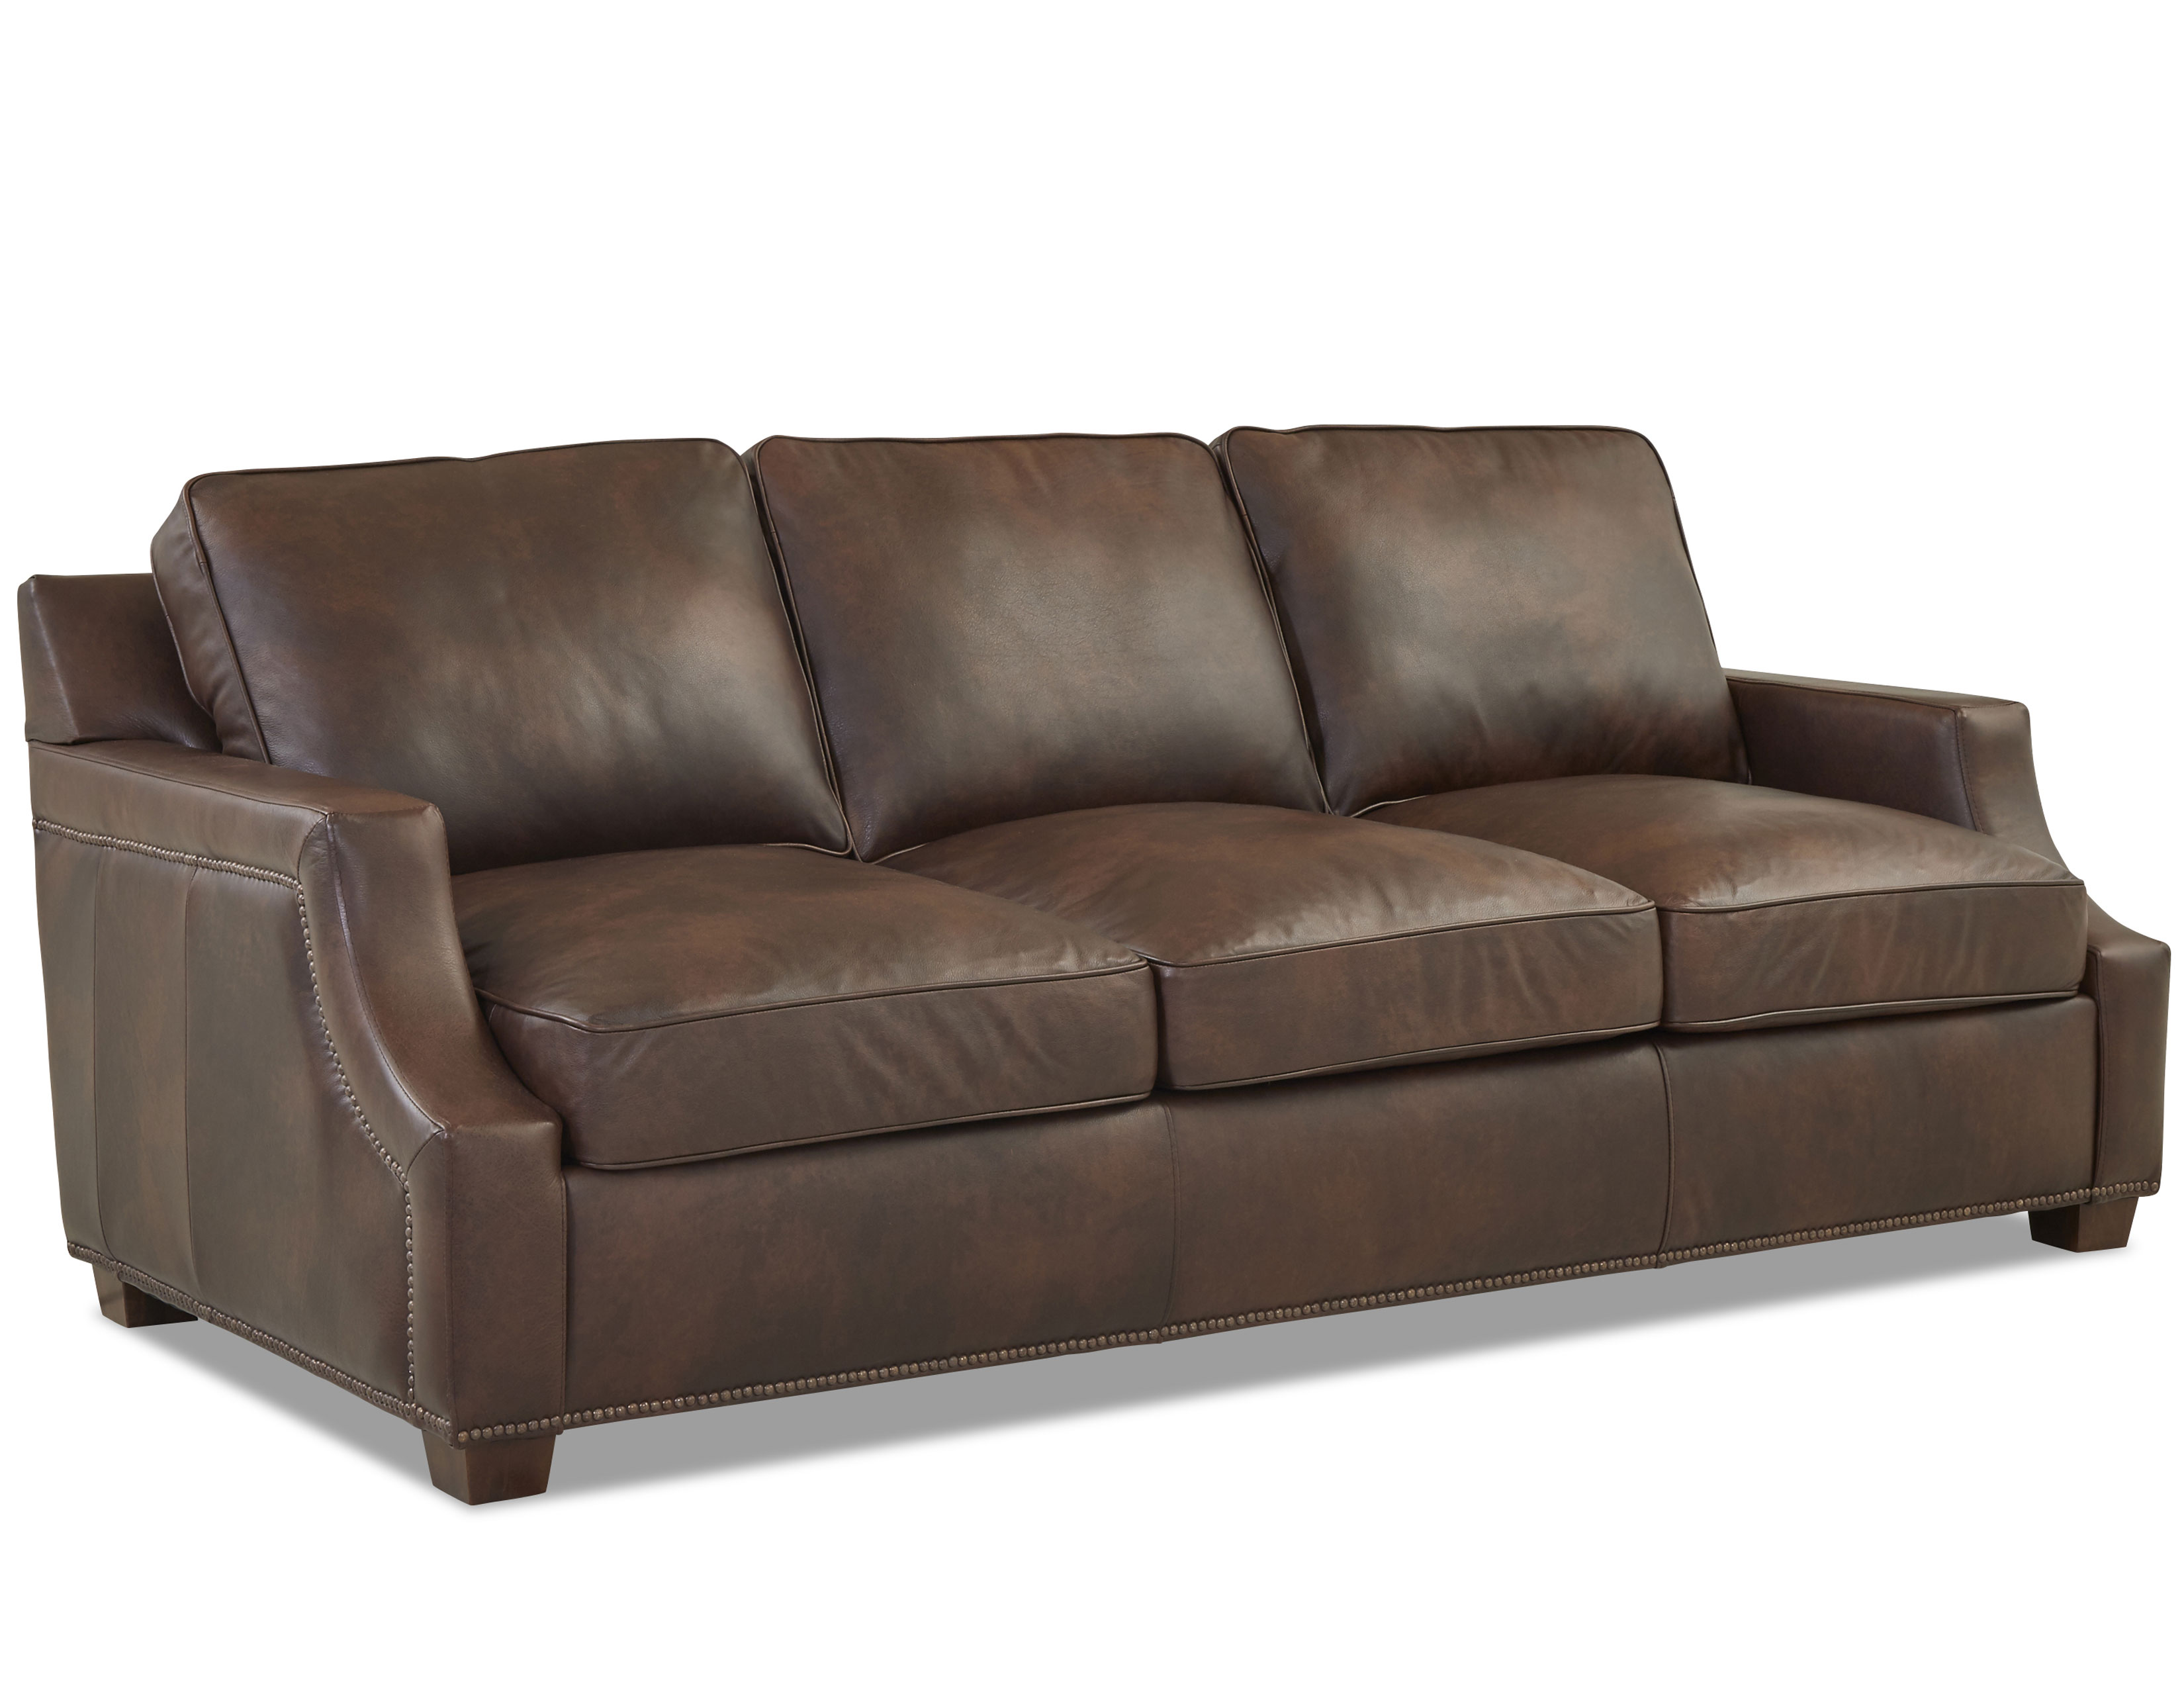 Kash Leather Sofa With Down Cushions Made To Sofas And Sectionals